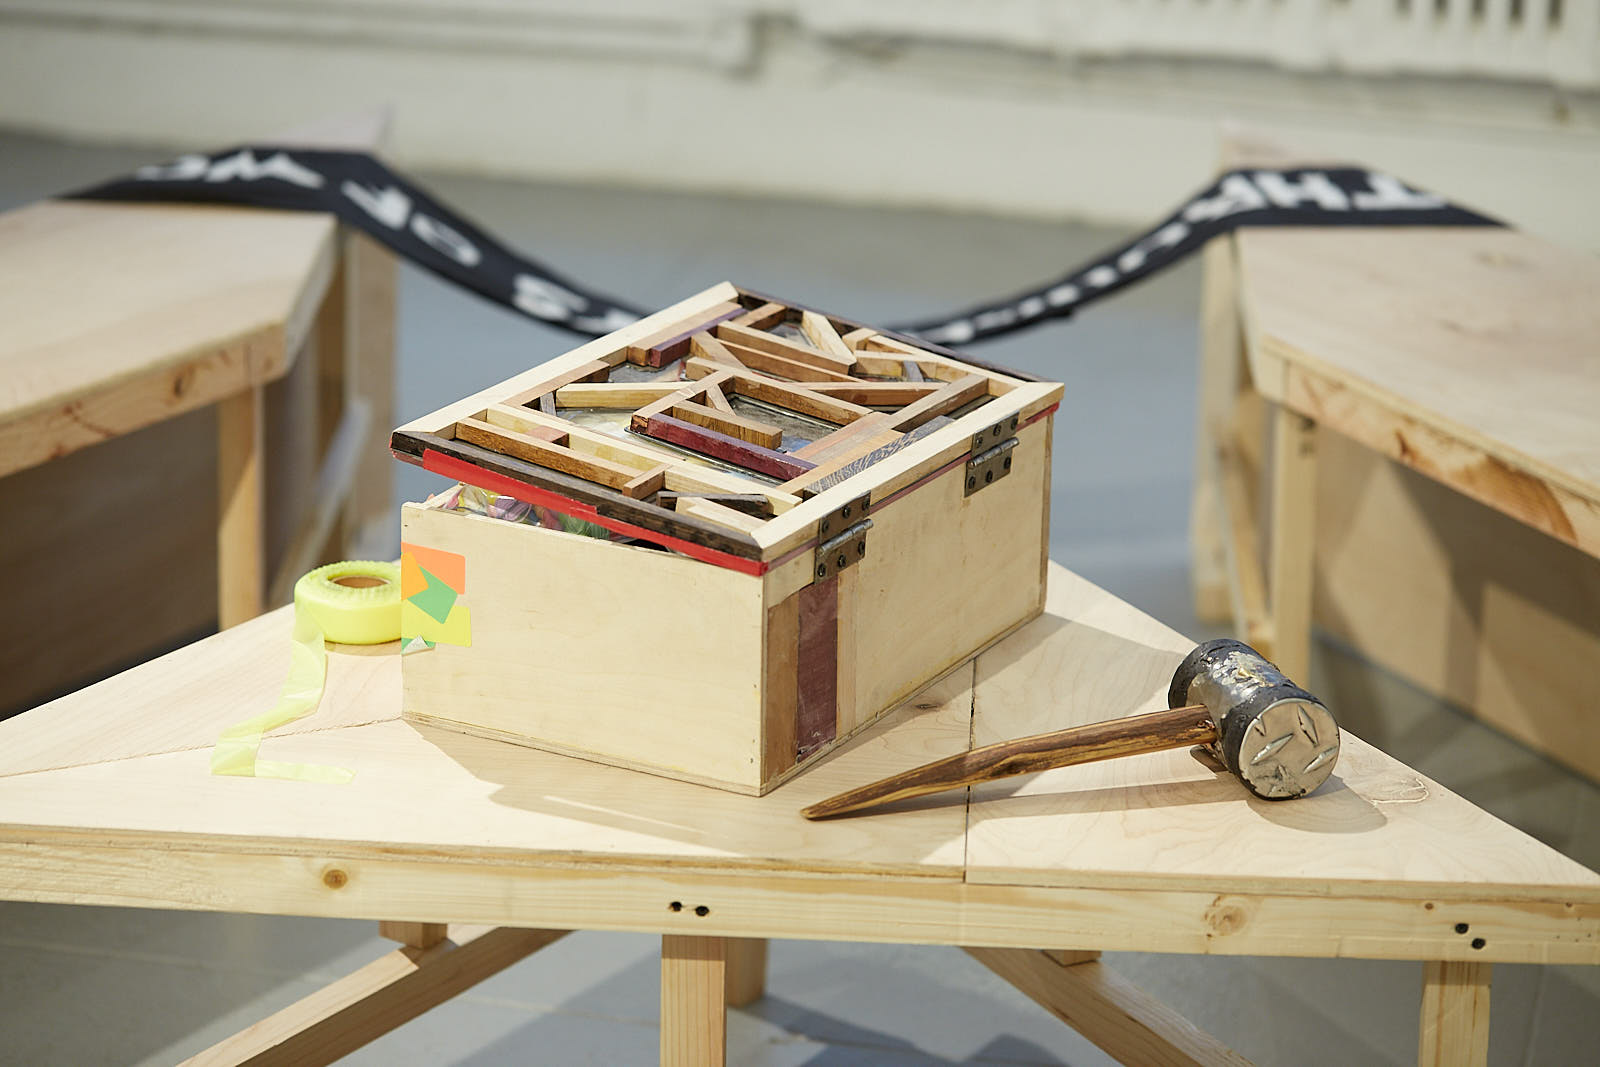 Group Exhibition #Callresponse March 23rd - May 5th at  Elizabeth Foundation for the Arts  Detail image of sculptural hammer, tool box and Bench object details made by IV Castellanos